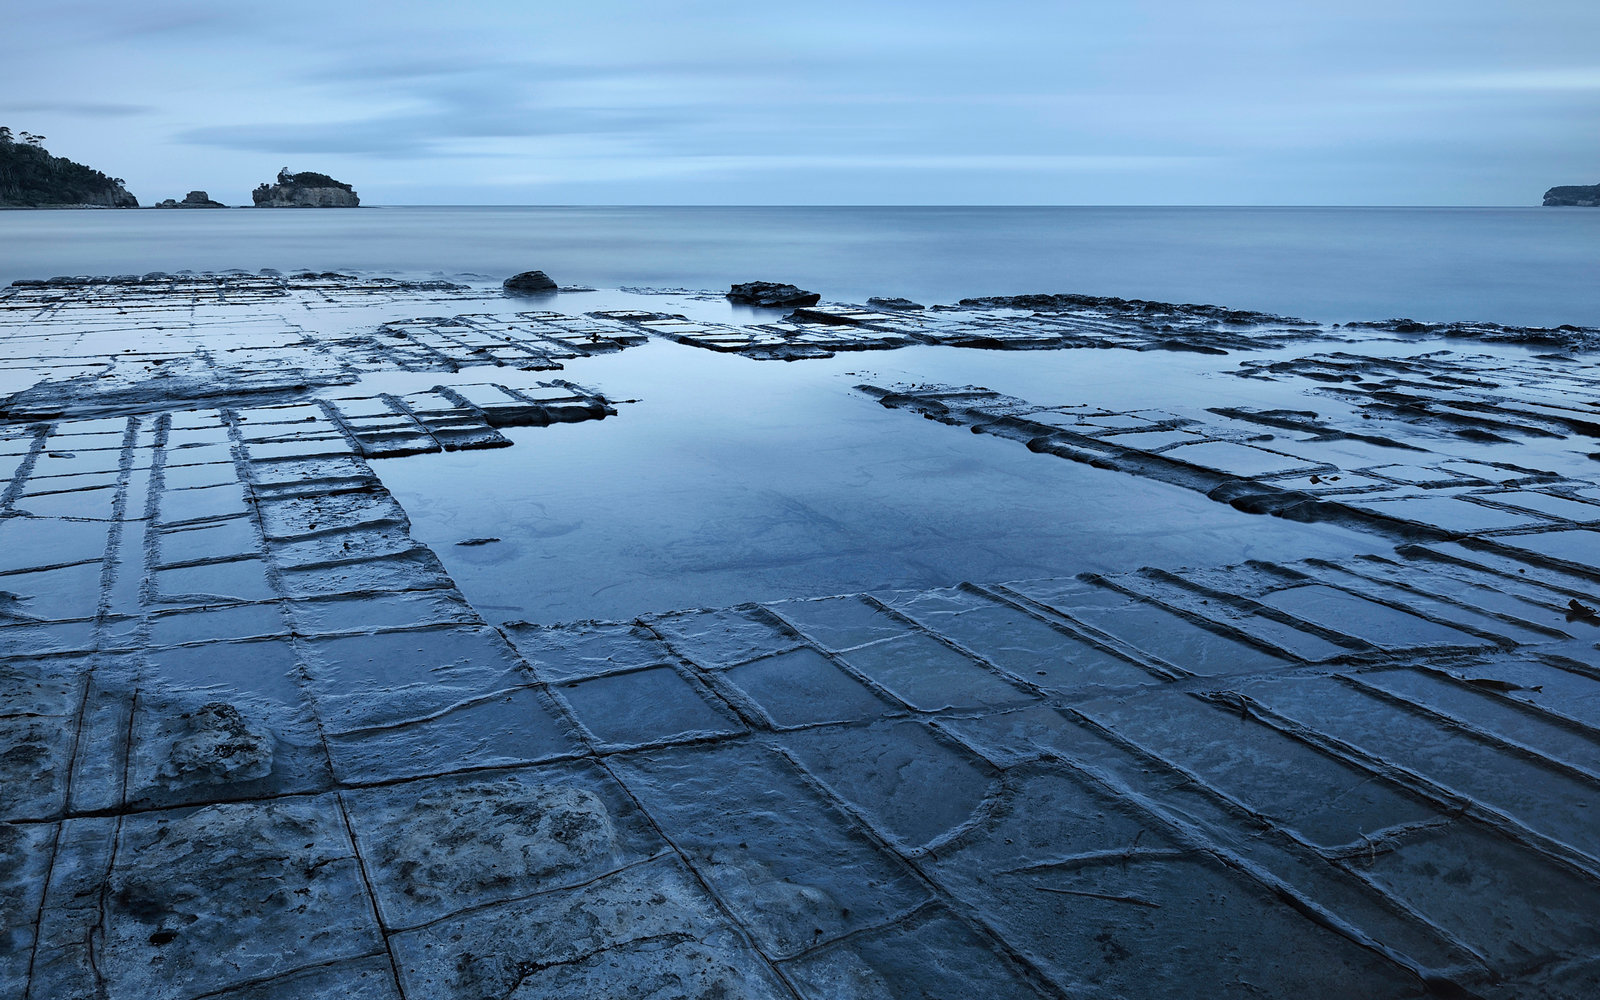 It took the Earth millions of years to make this strangely pavement-like rock formation